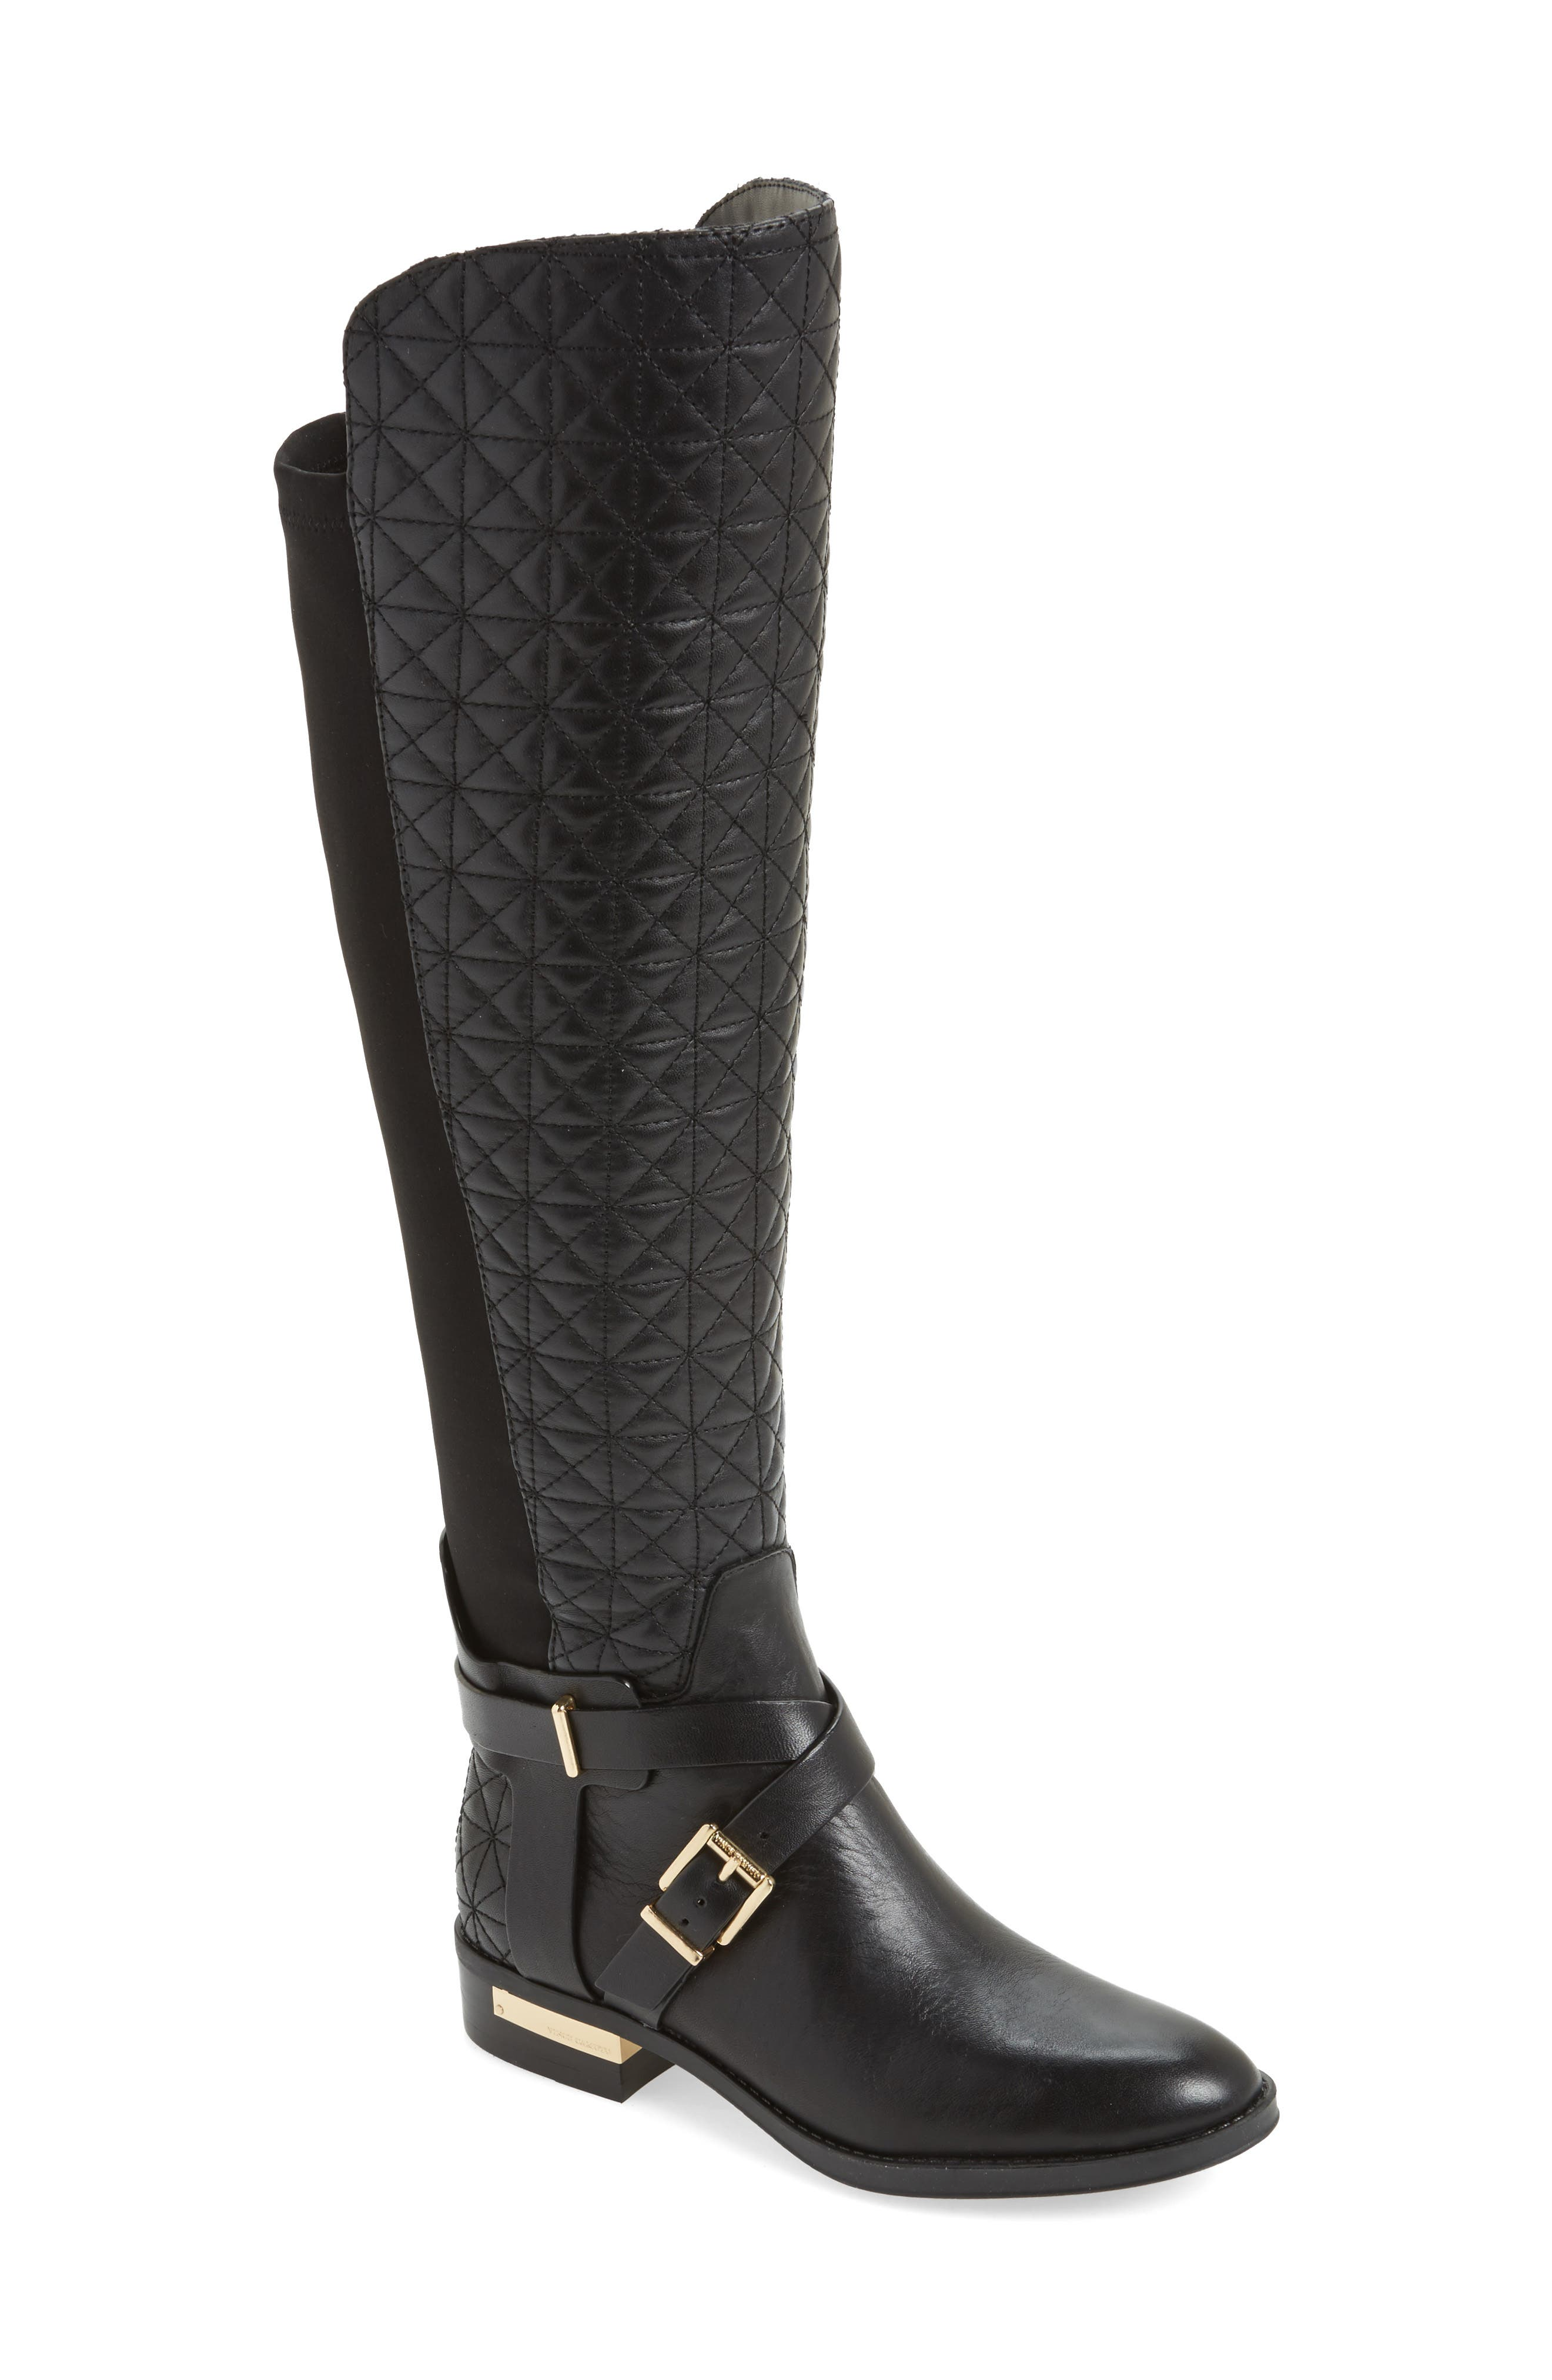 Patira Over the Knee Boot,                             Main thumbnail 1, color,                             Black Leather Wide Calf